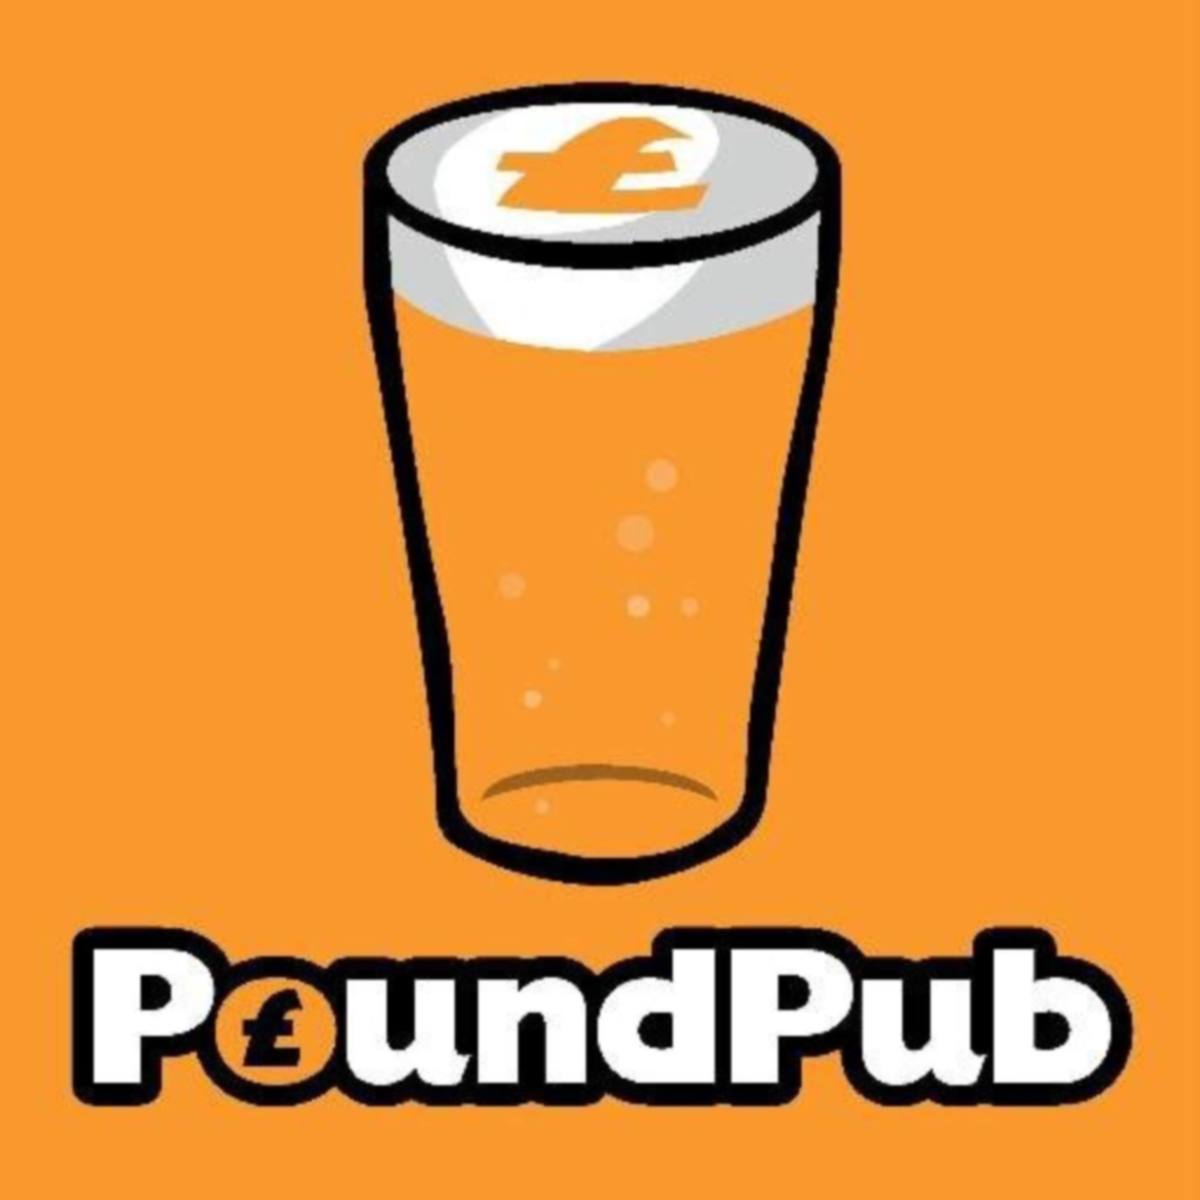 Anger at plan for cut-price pub beer at PoundPub